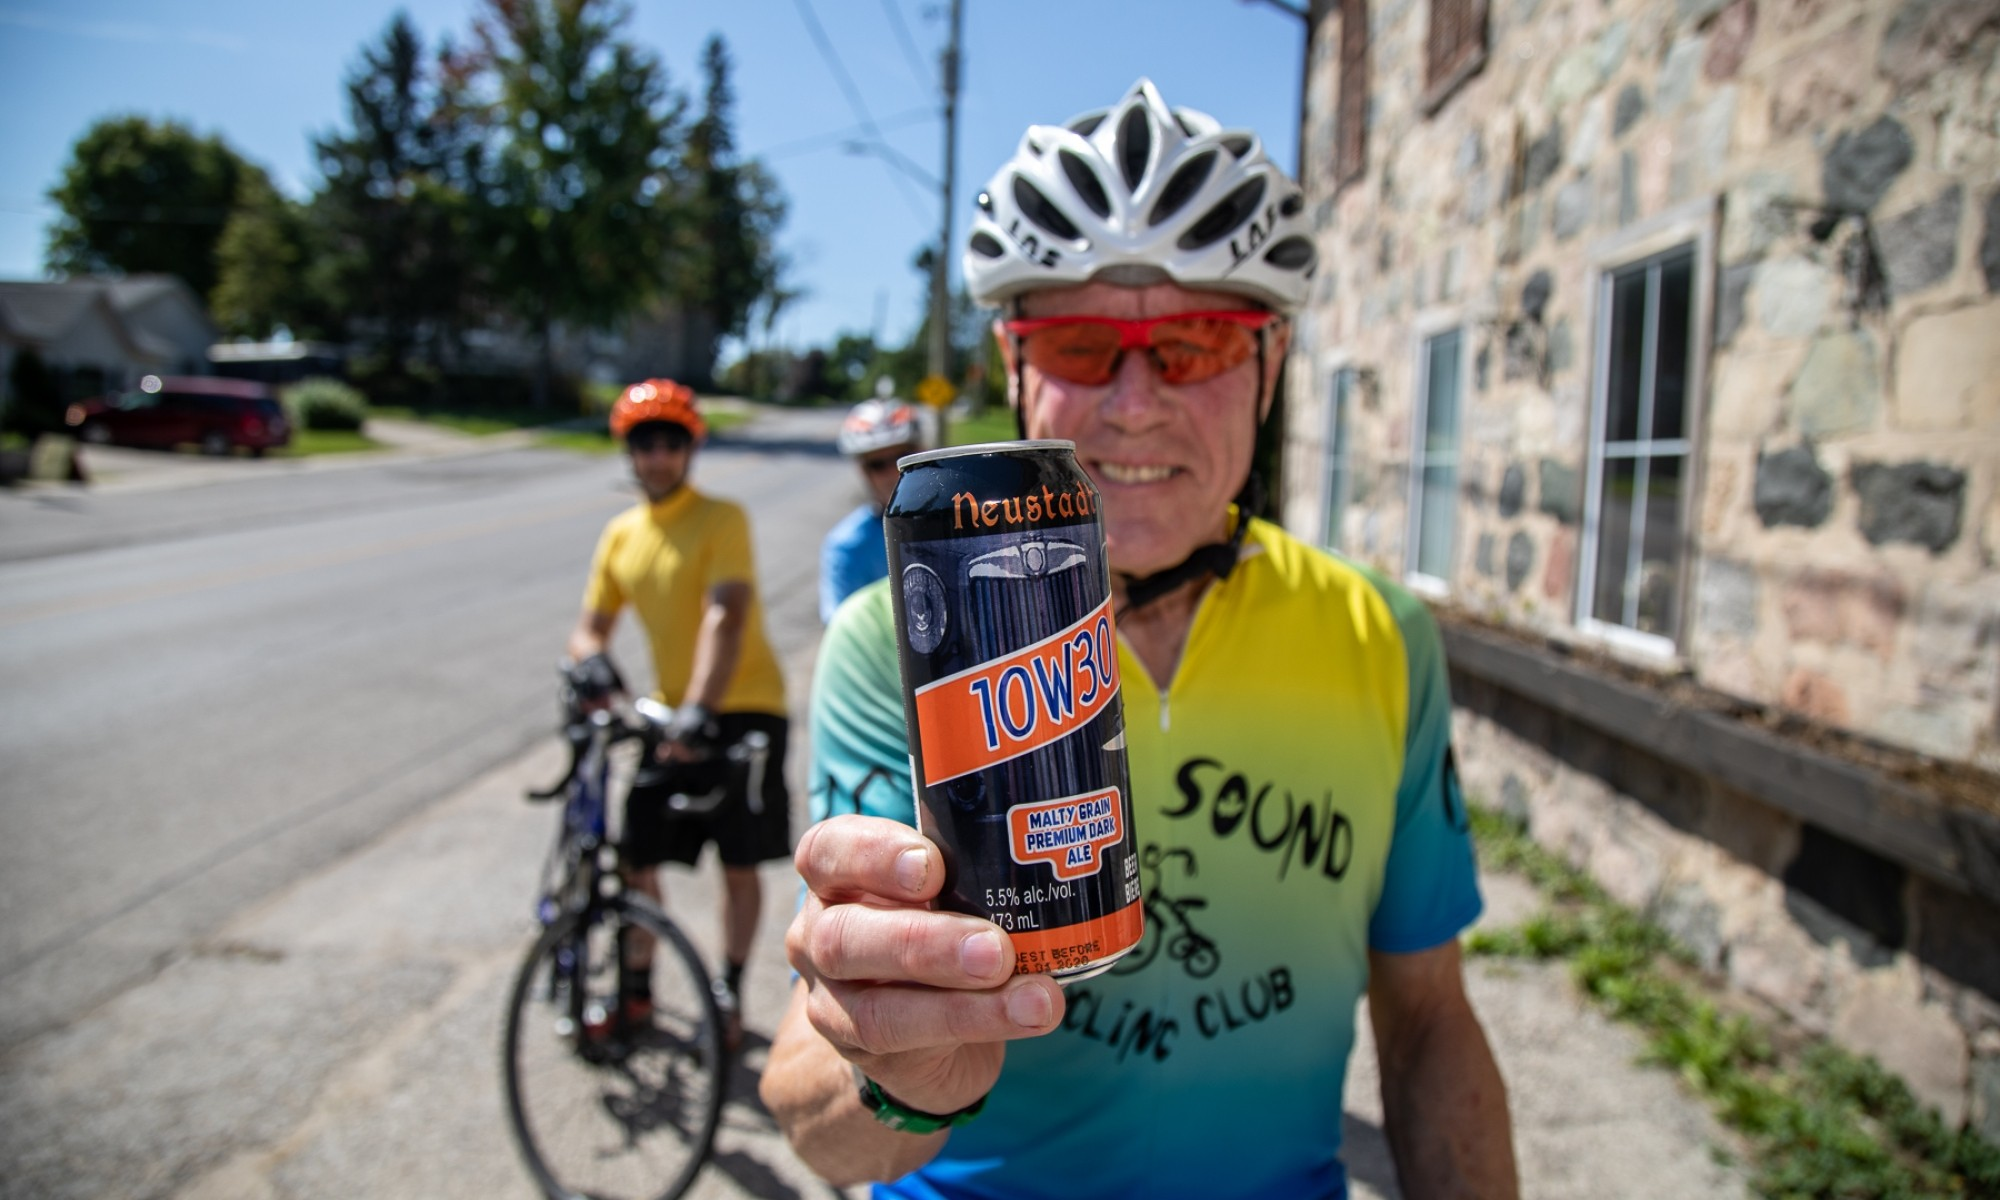 Man in cycling apparel holding beer can